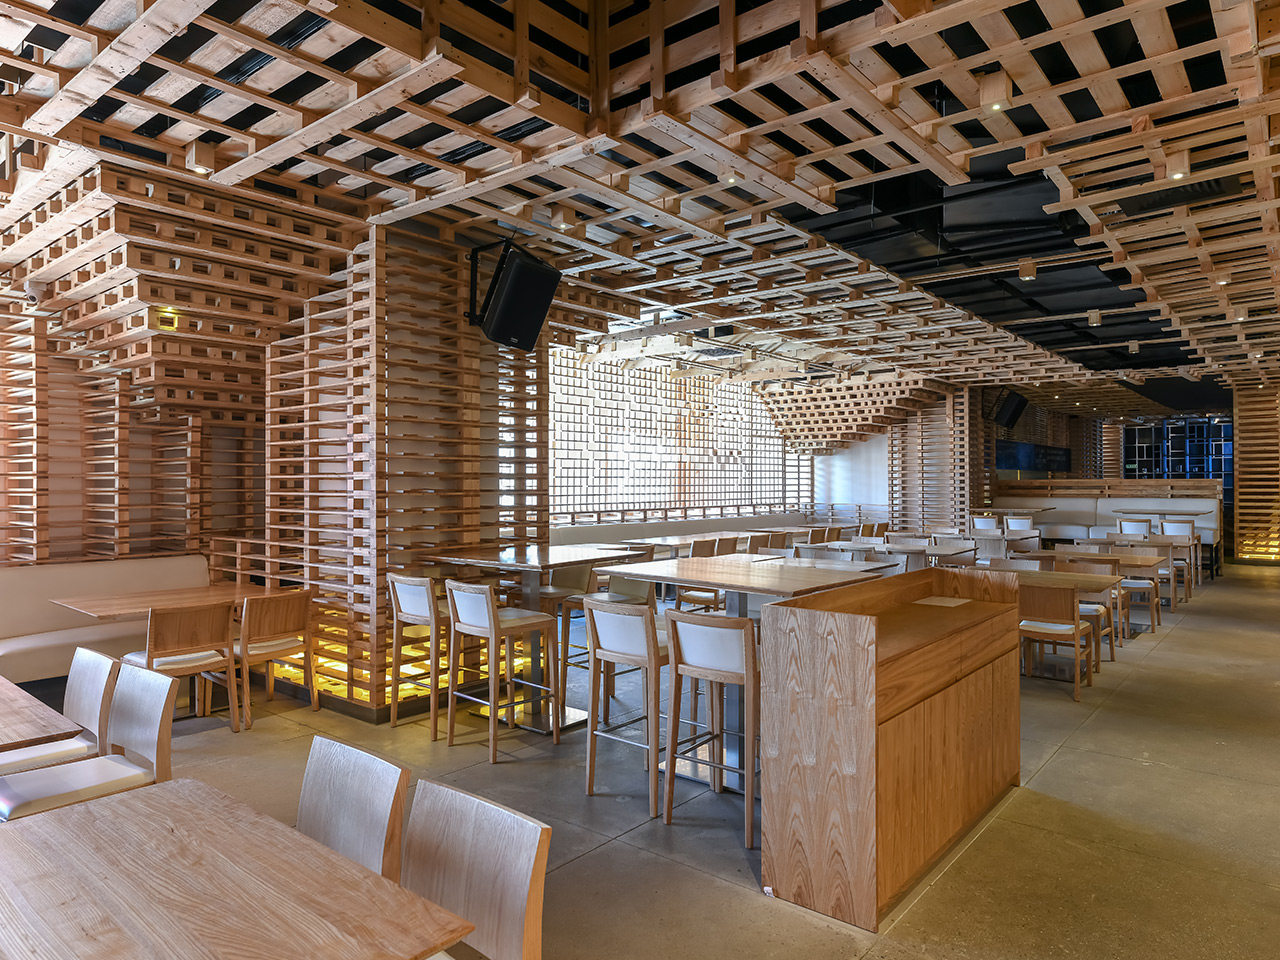 The Pallet - Brewhouse & Kitchen <abbr> Bengaluru, Karnataka <br>SPF panelling, cladding and ceiling <br><br>Platinum award winner at the International A'Design & Competition 2017-2018, Italy <br> Bronze award winner at International Design Awards, LA in the sustainable/green interiors category</abbr>